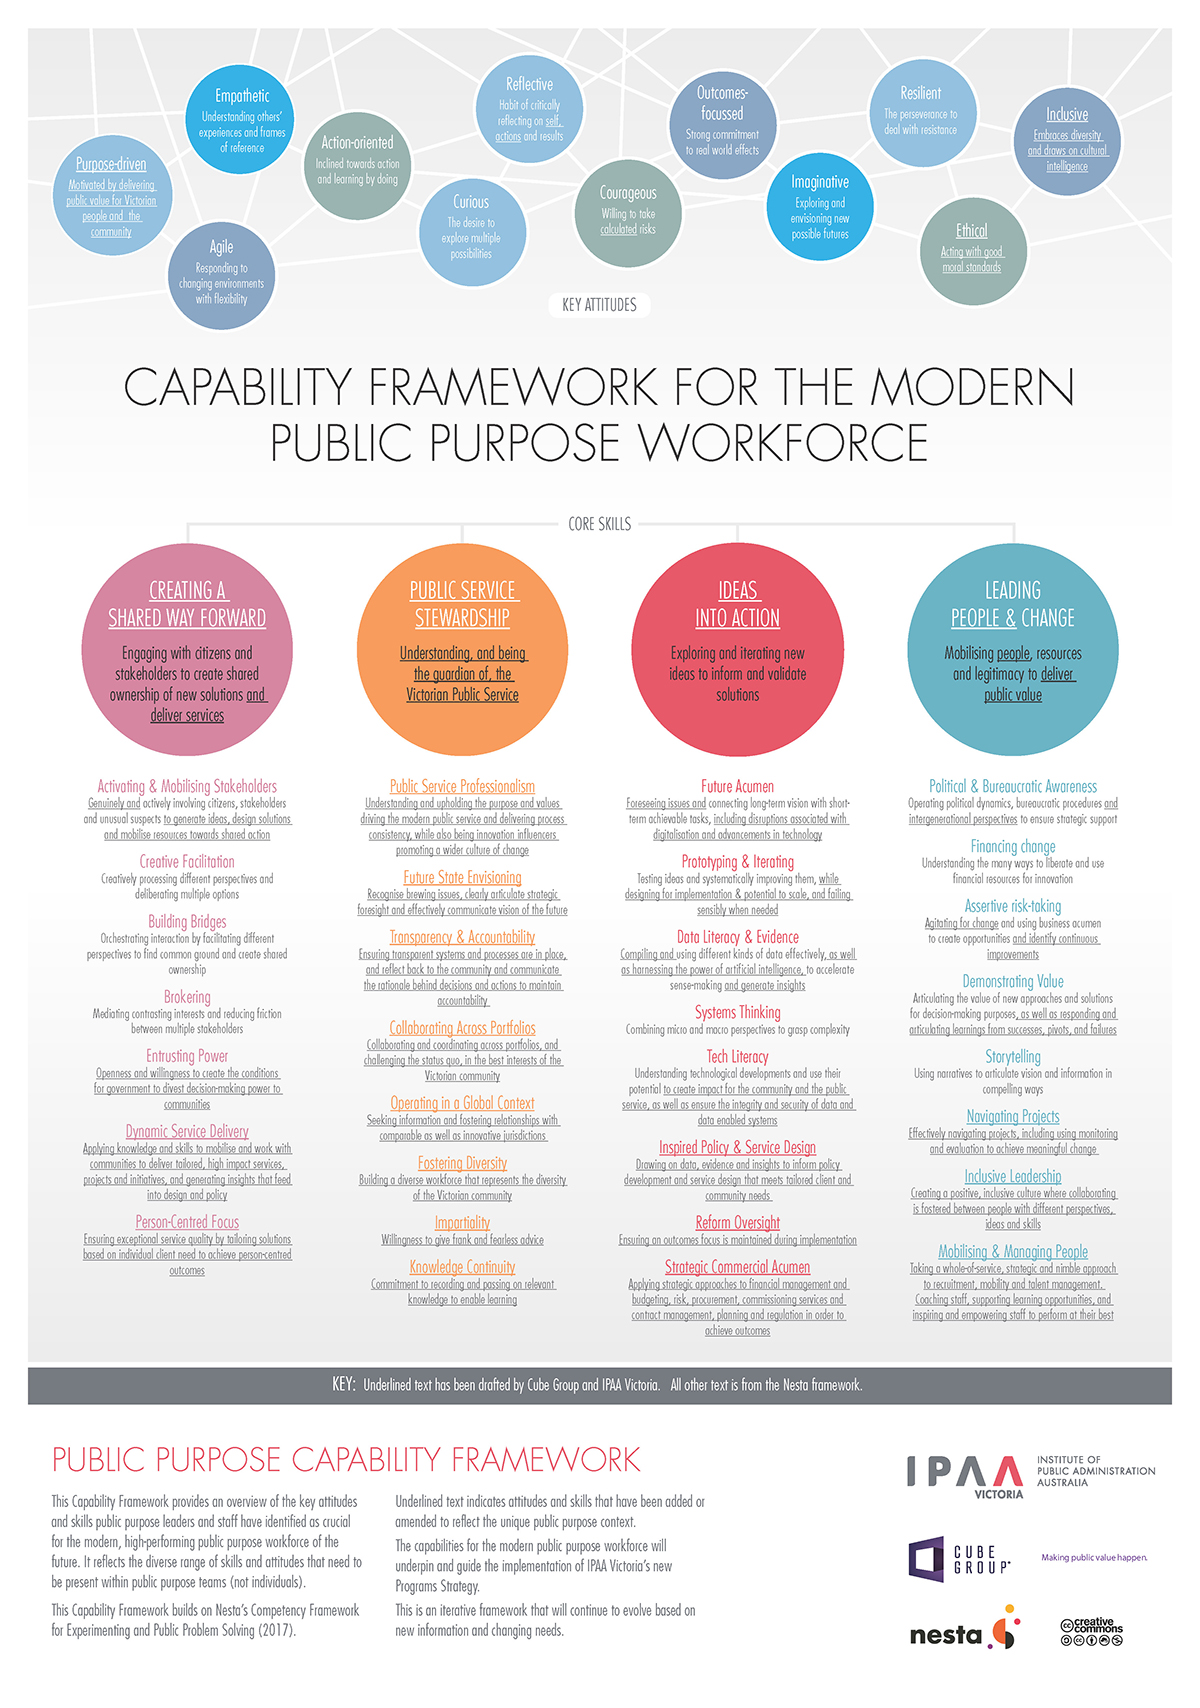 Click to enlarge the image of the Public Purpose Capability Framework.